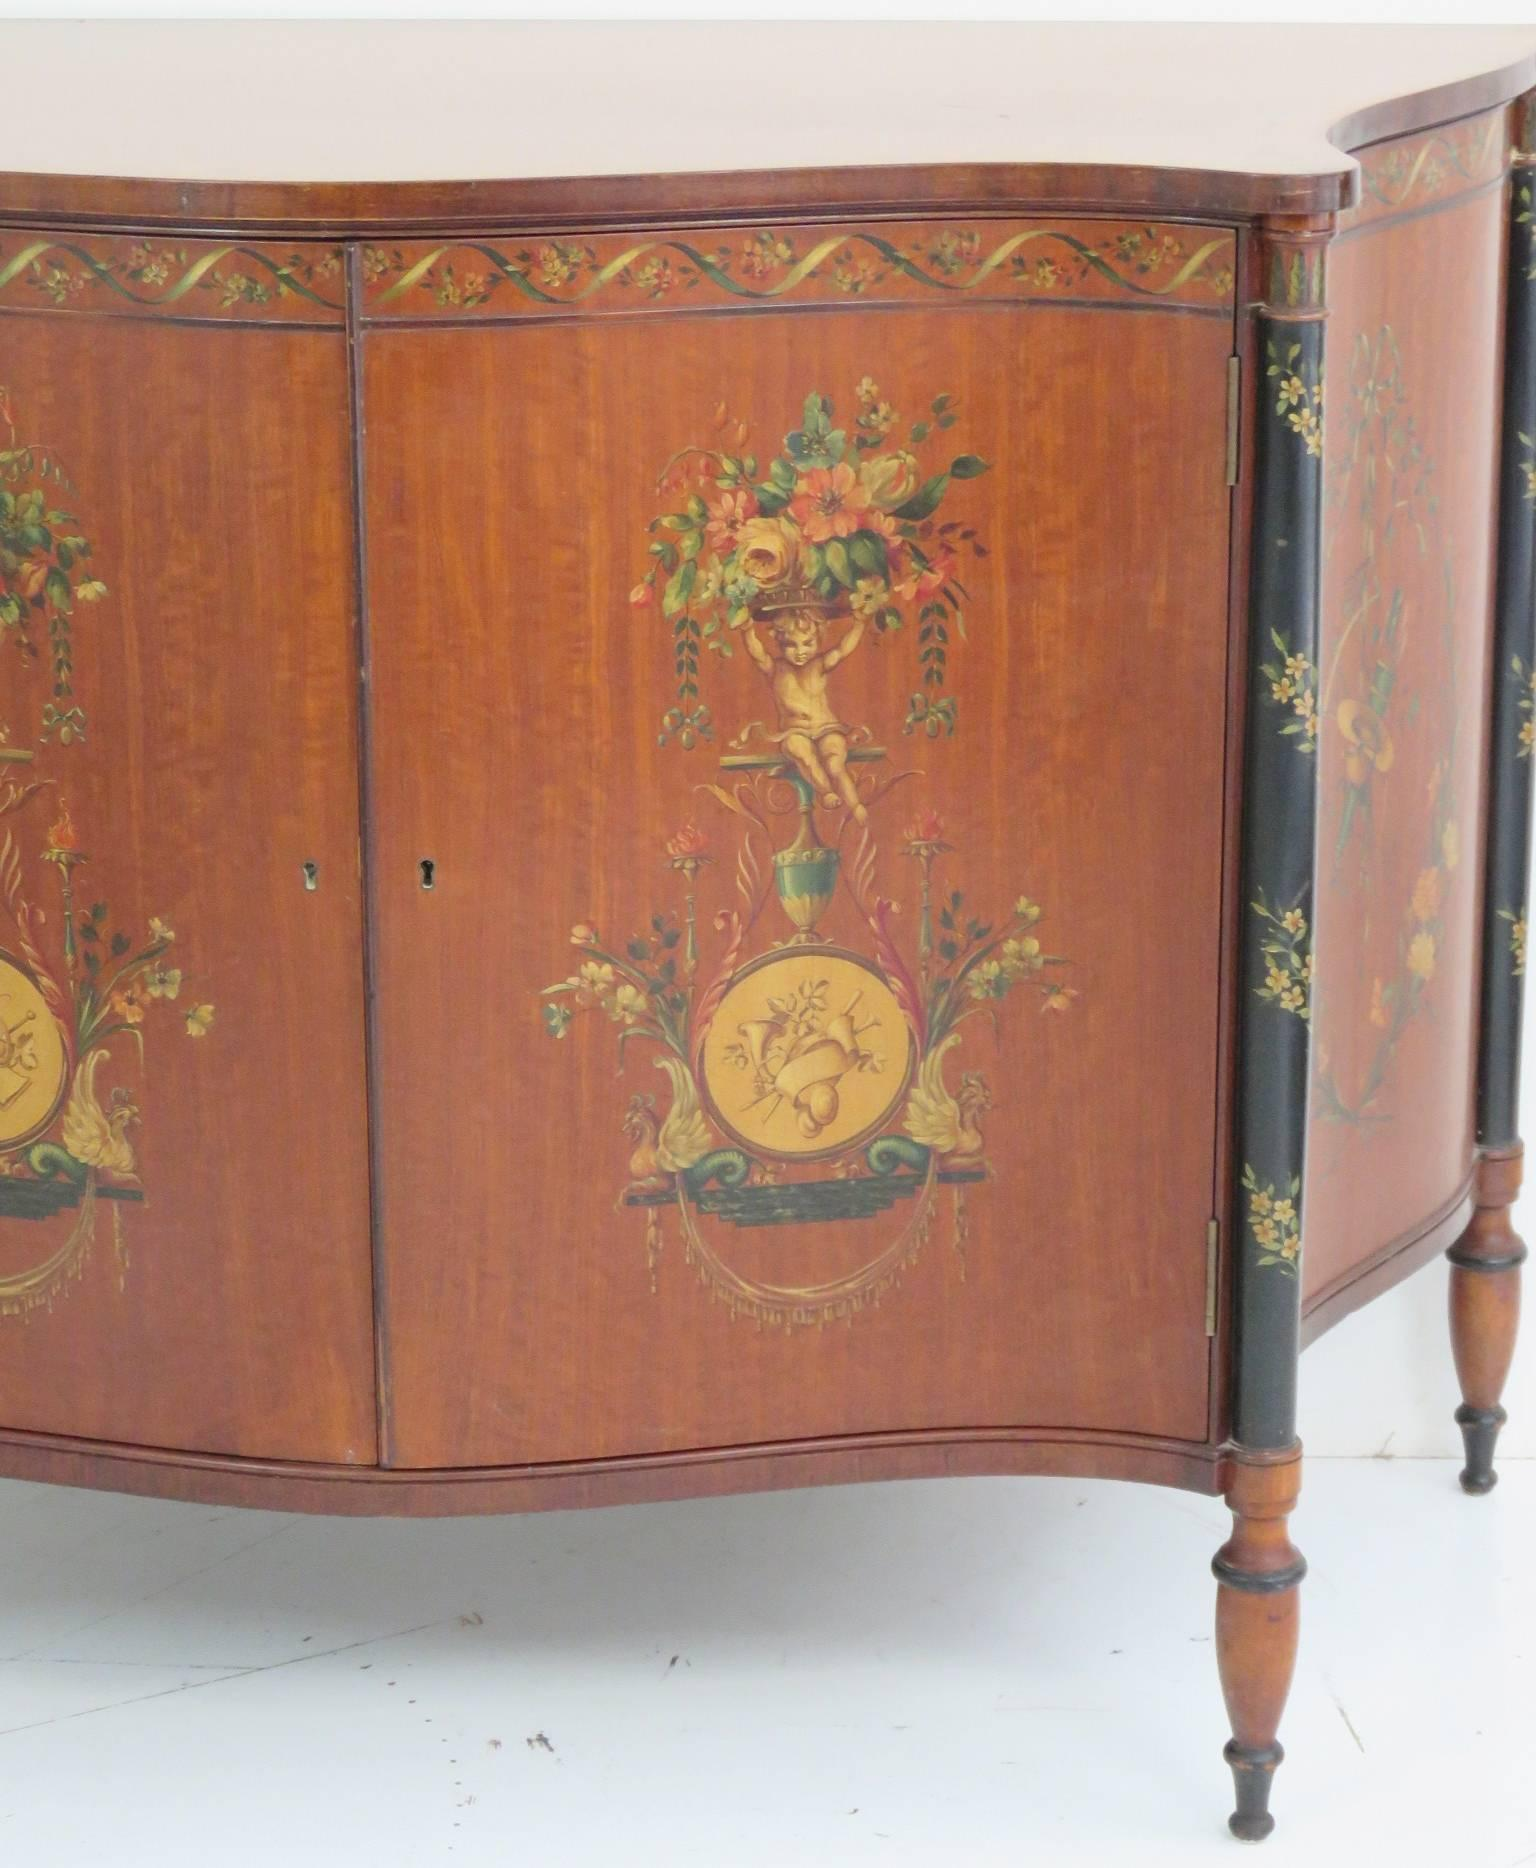 Vintage Sideboard Yorkshire Adams Style Paint Decorated Two-door Cabinet For Sale At